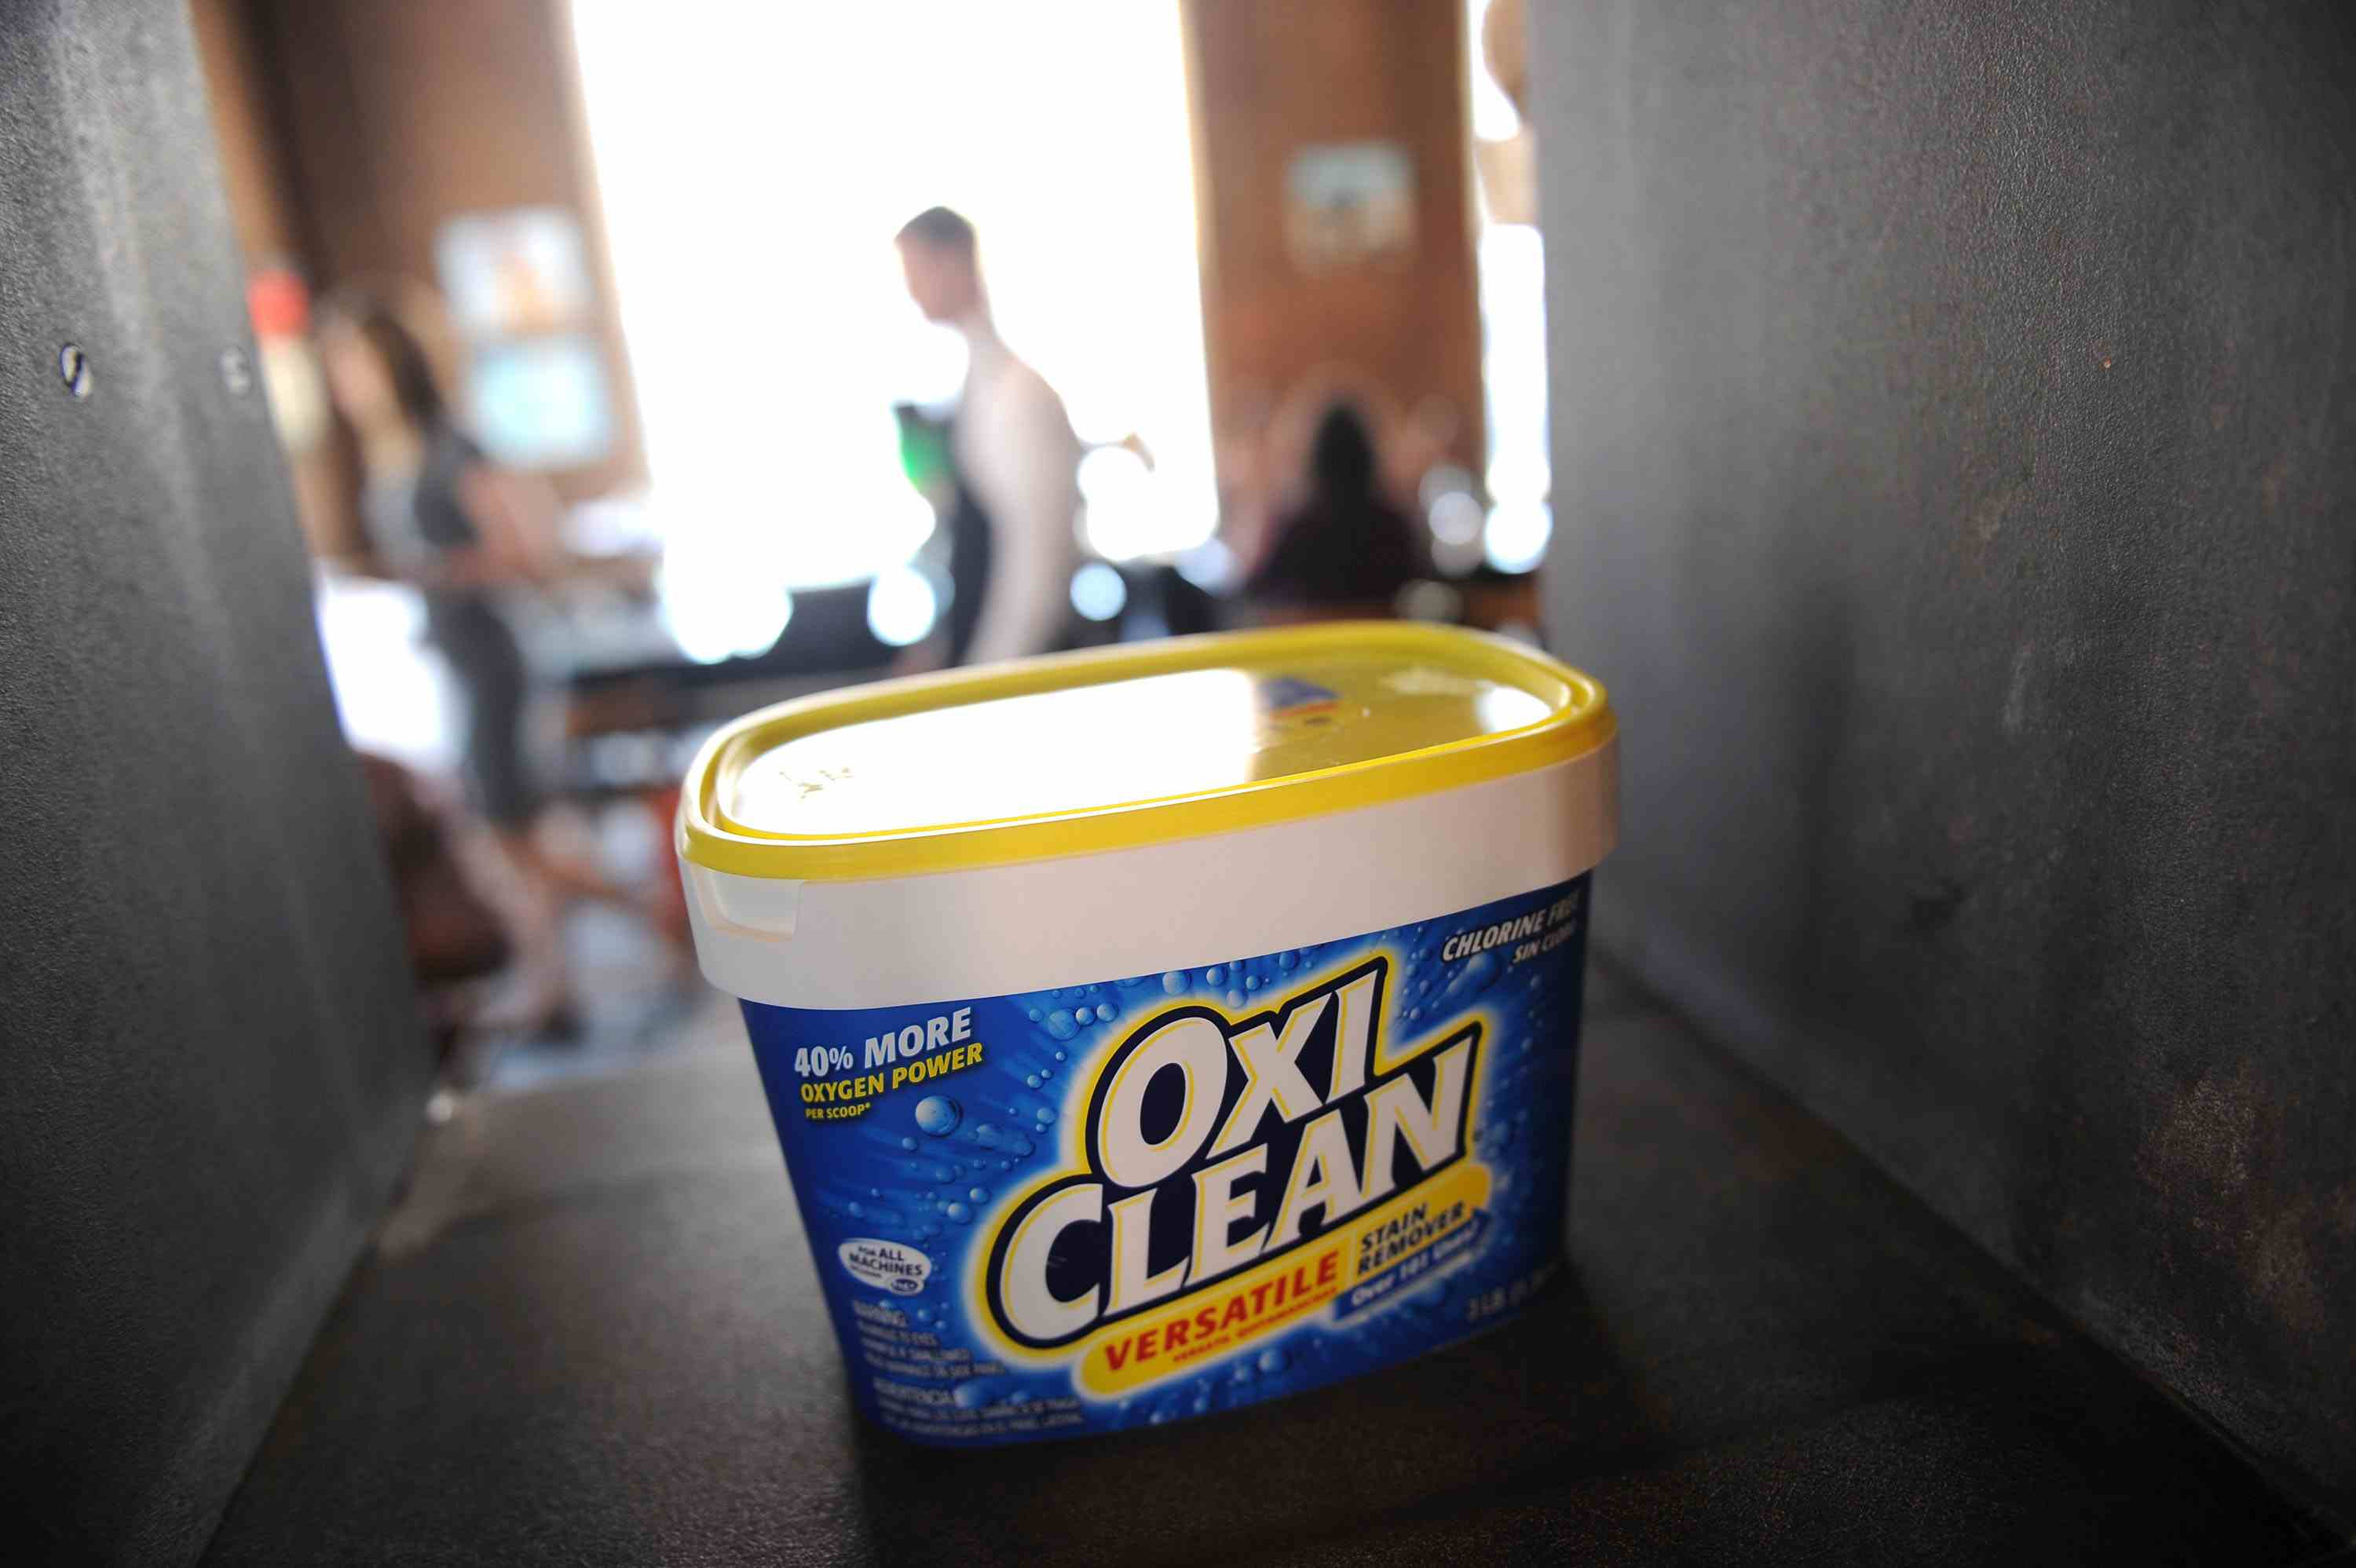 Container of OxiClean on a shelf.